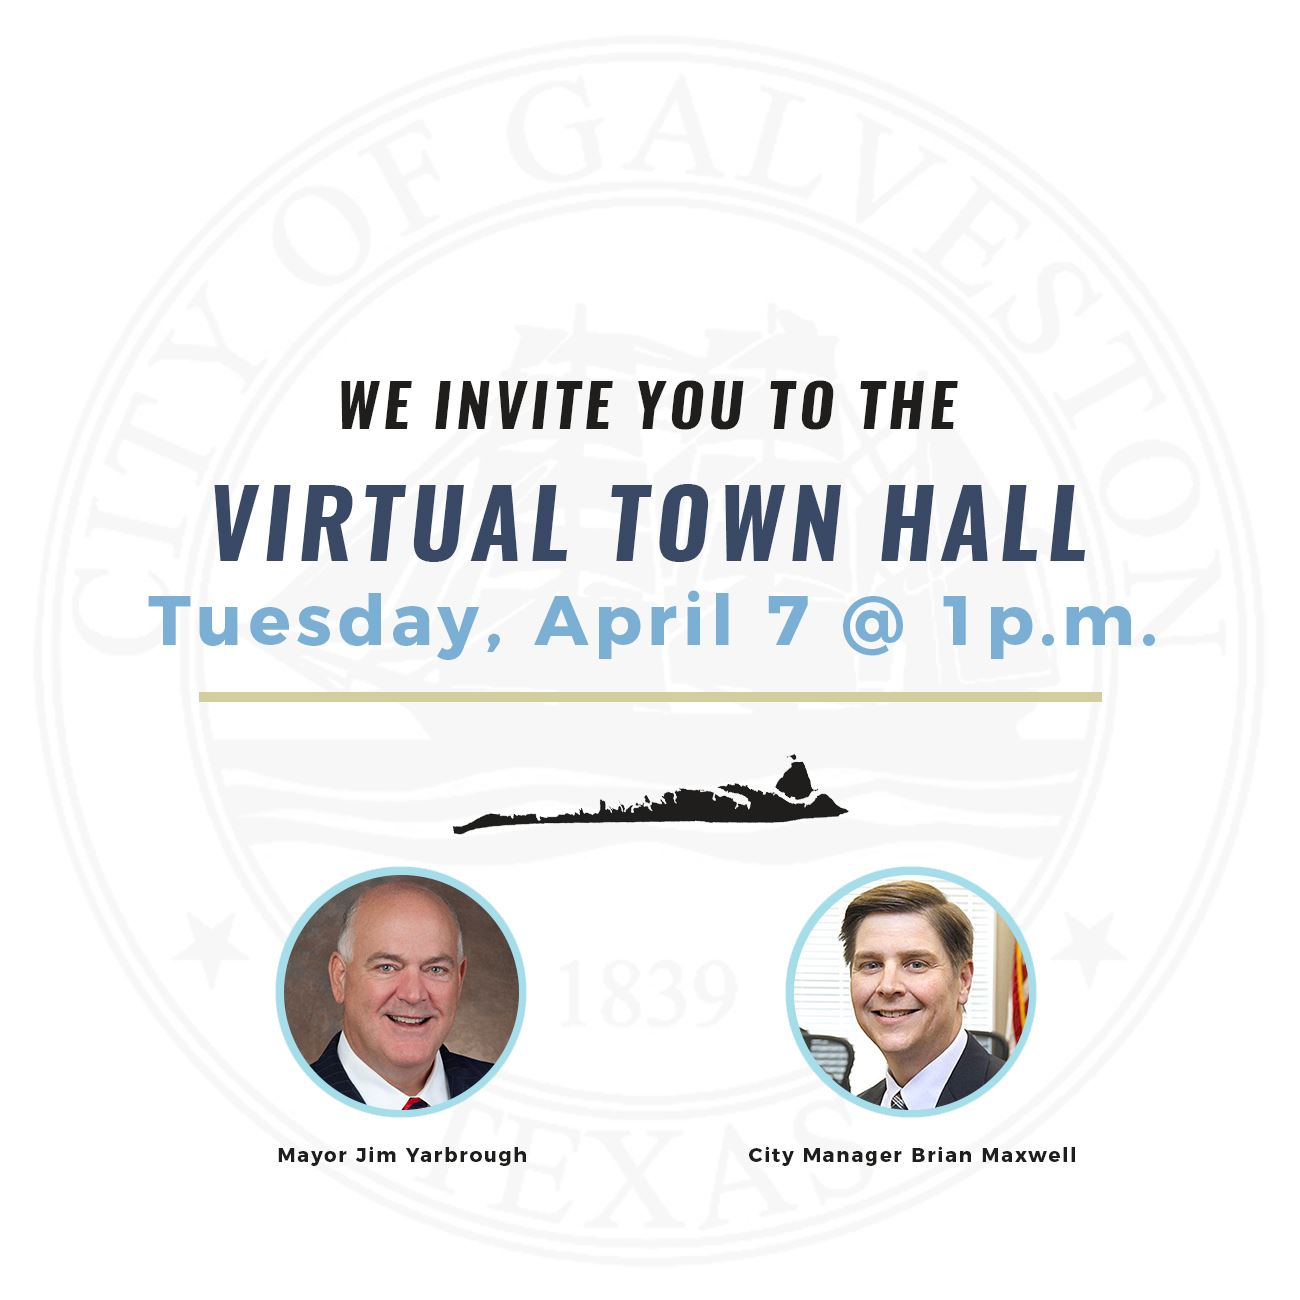 Important upcoming events: State of the City and Virtual Town Hall